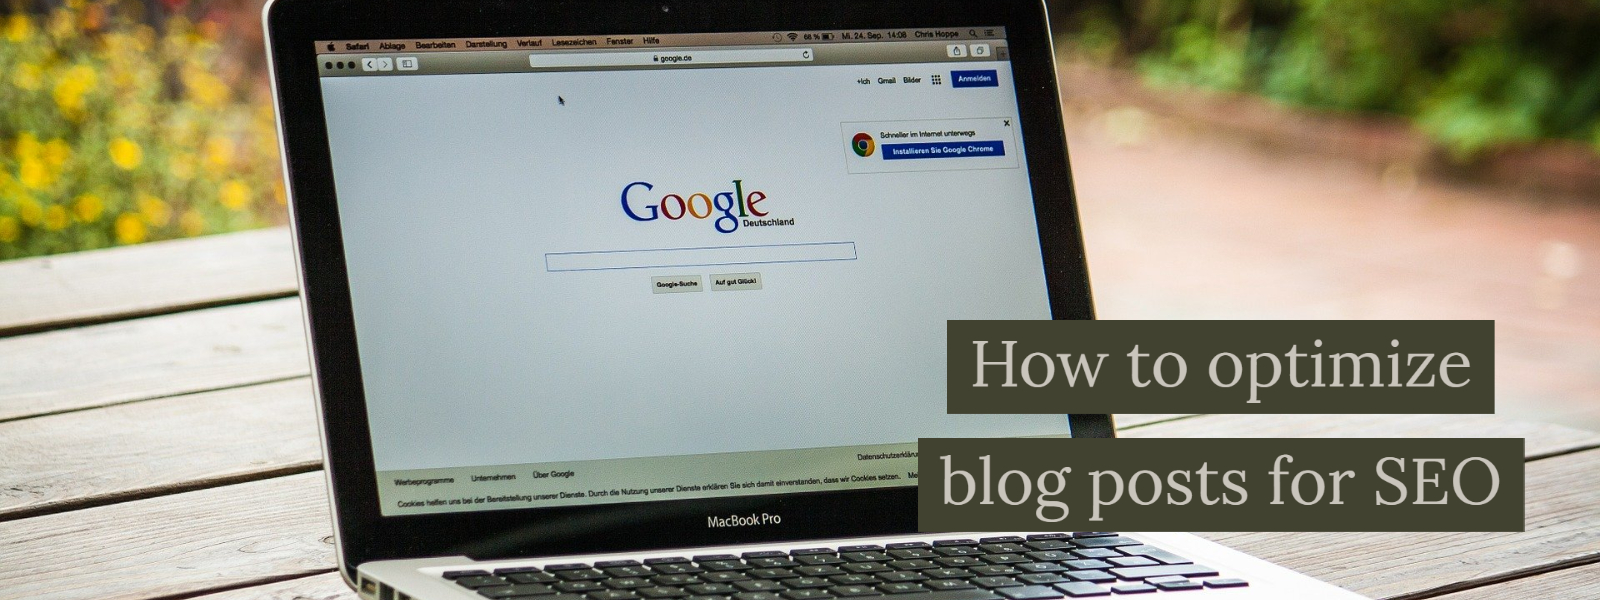 How to optimize blog posts for SEO